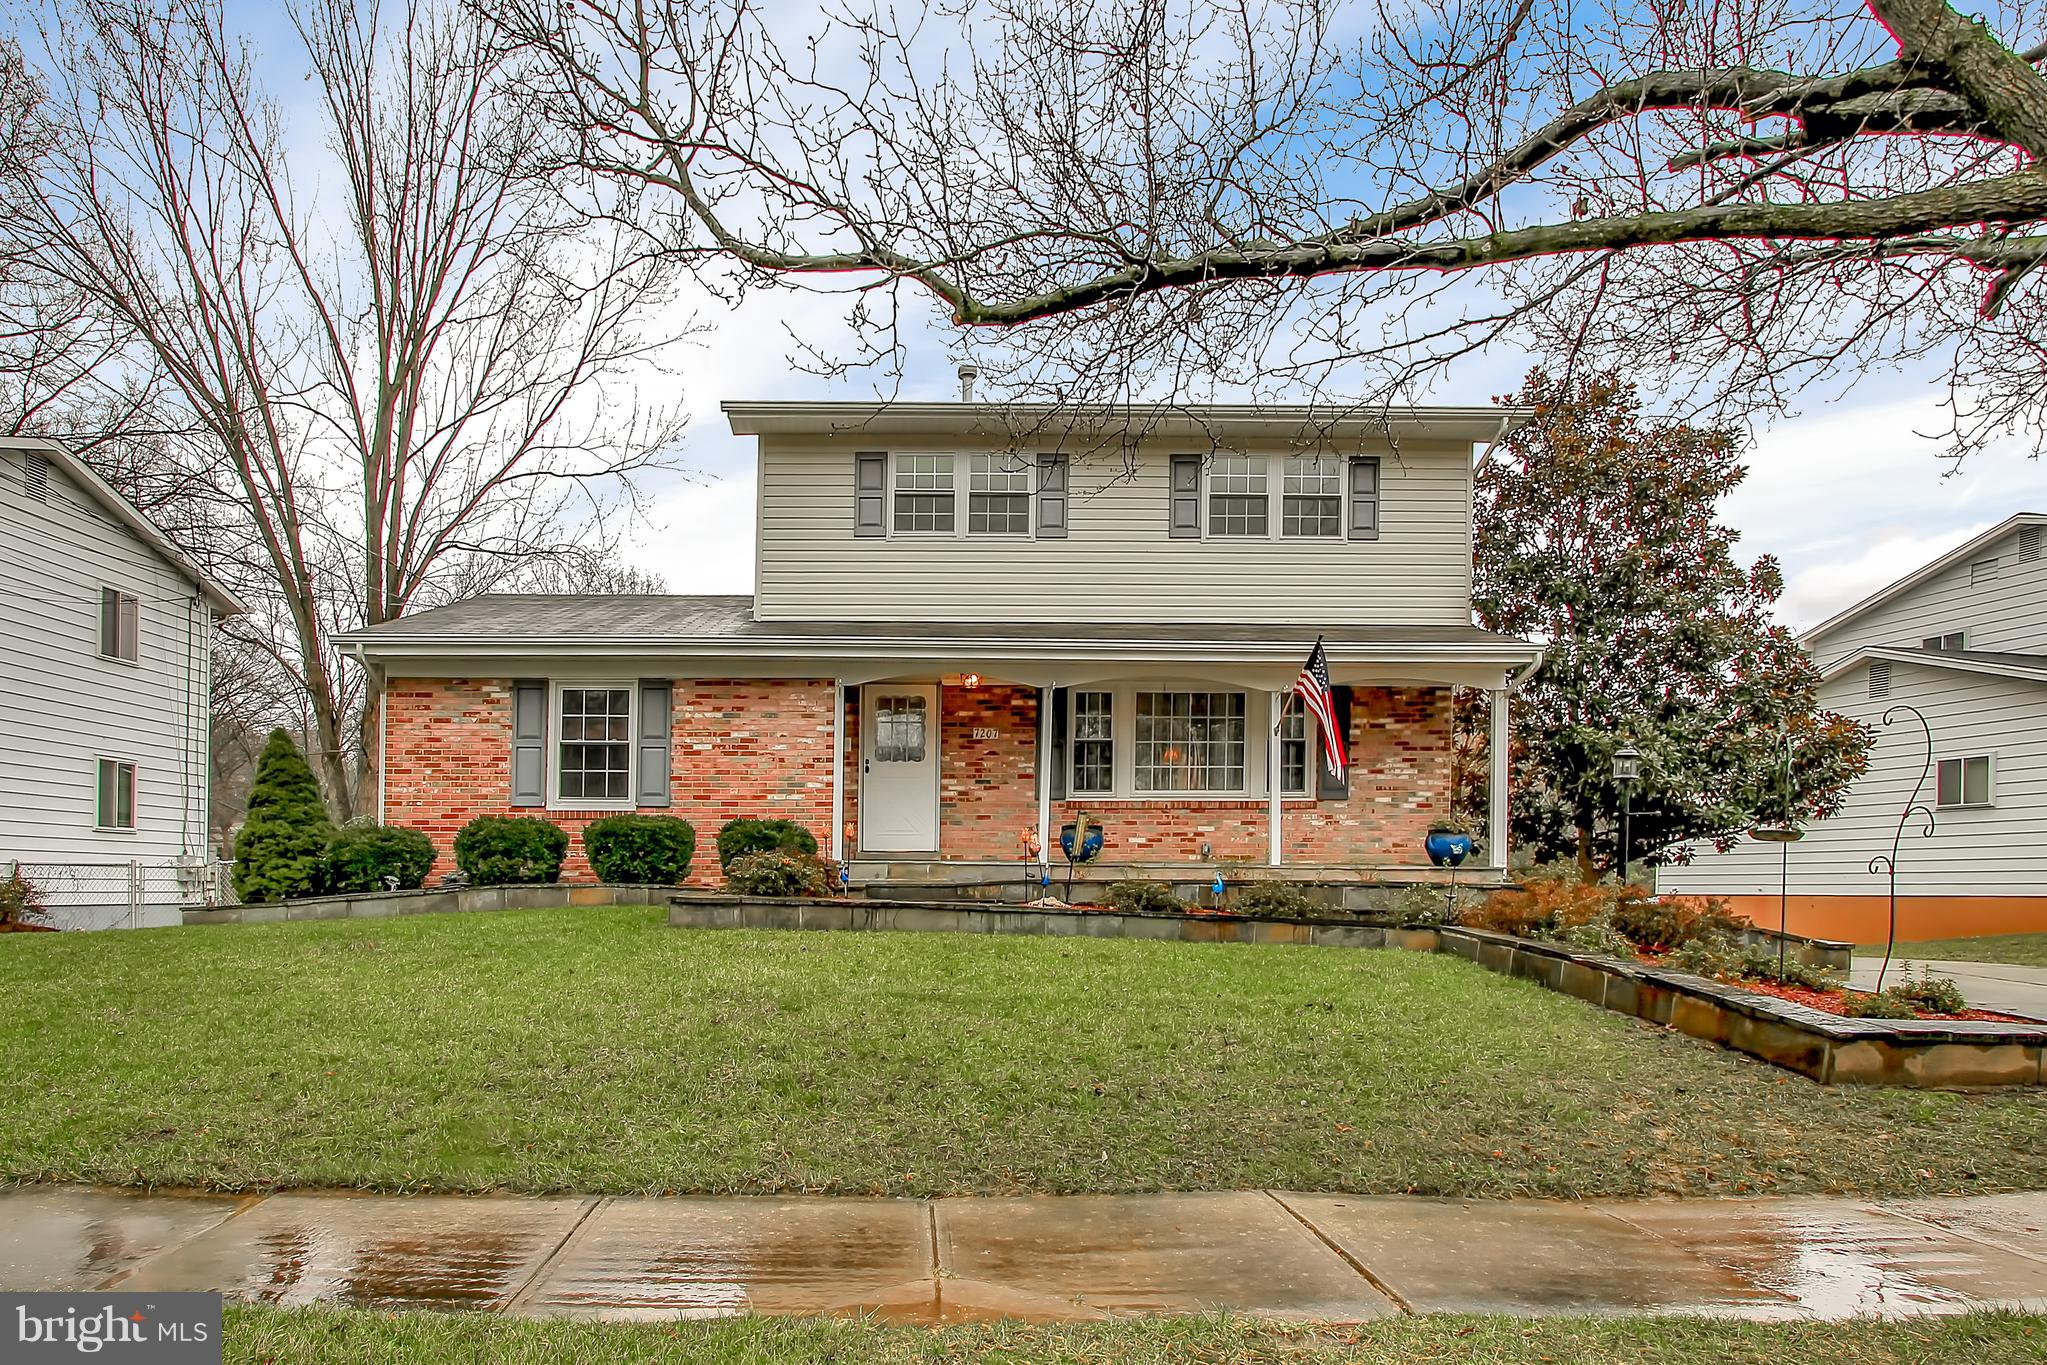 7207 LONGBRANCH DRIVE, NEW CARROLLTON, MD 20784